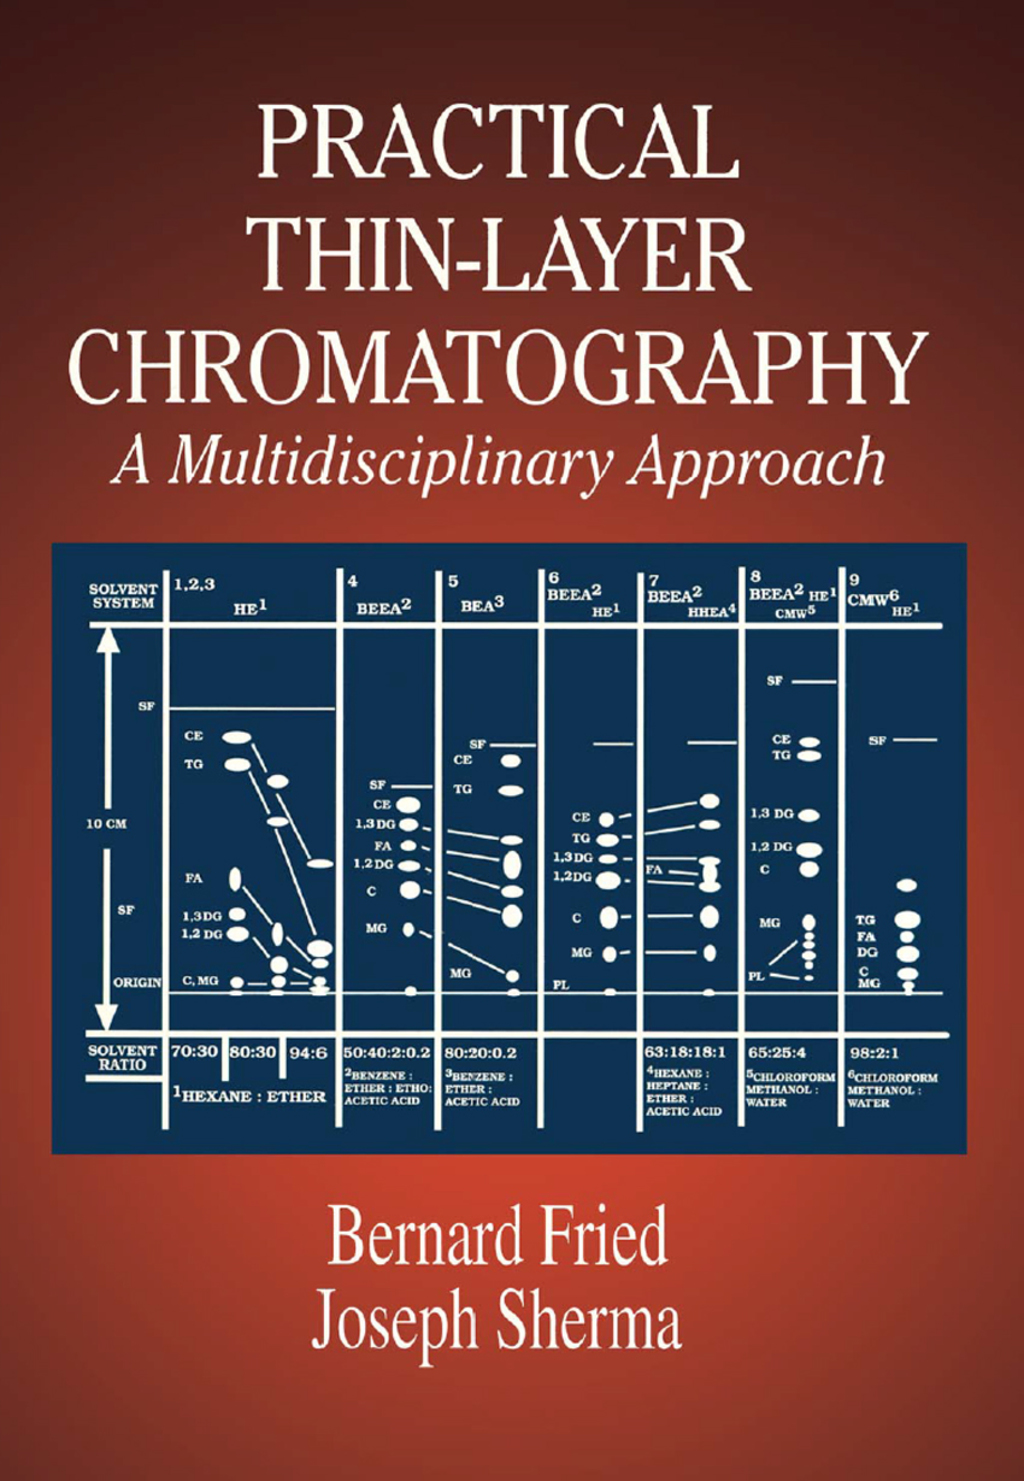 Practical Thin-Layer Chromatography (eBook Rental)